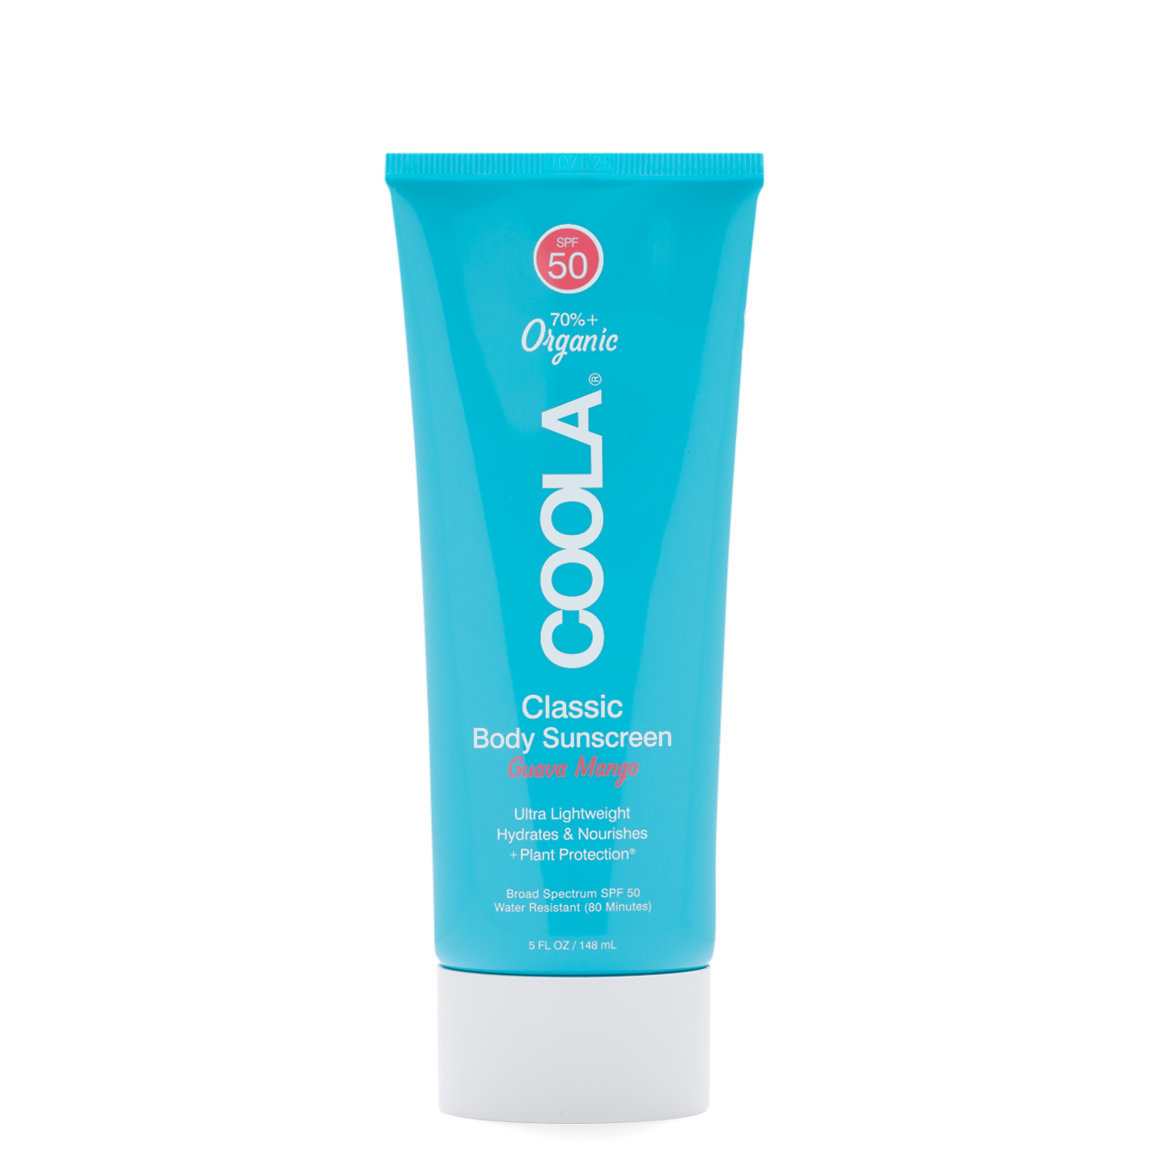 COOLA Classic Body Sunscreen Moisturizer SPF 50 Guava Mango product swatch.